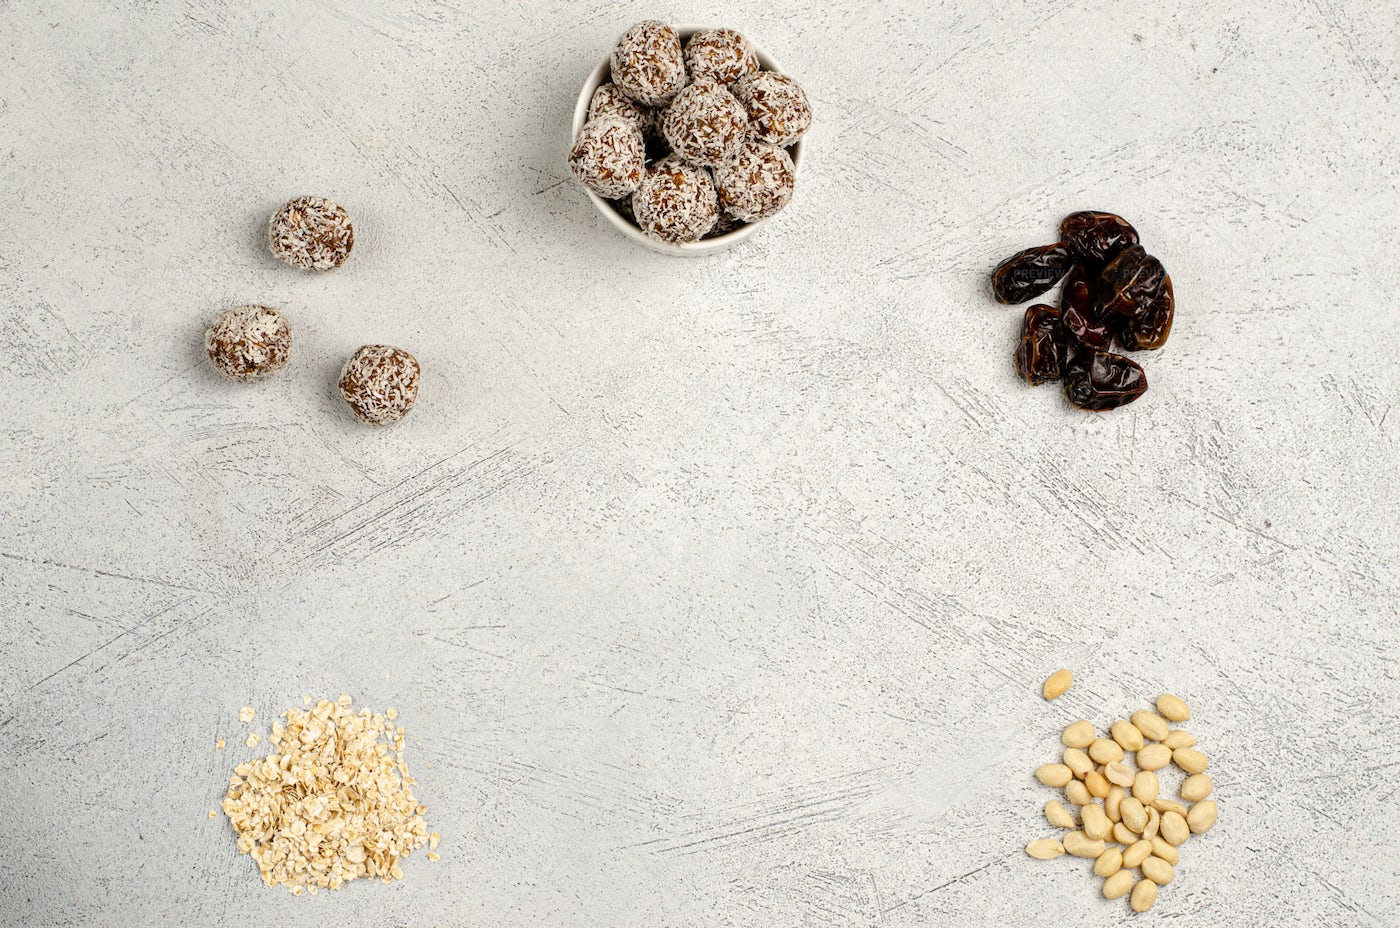 Energy Sweets And Peanuts: Stock Photos